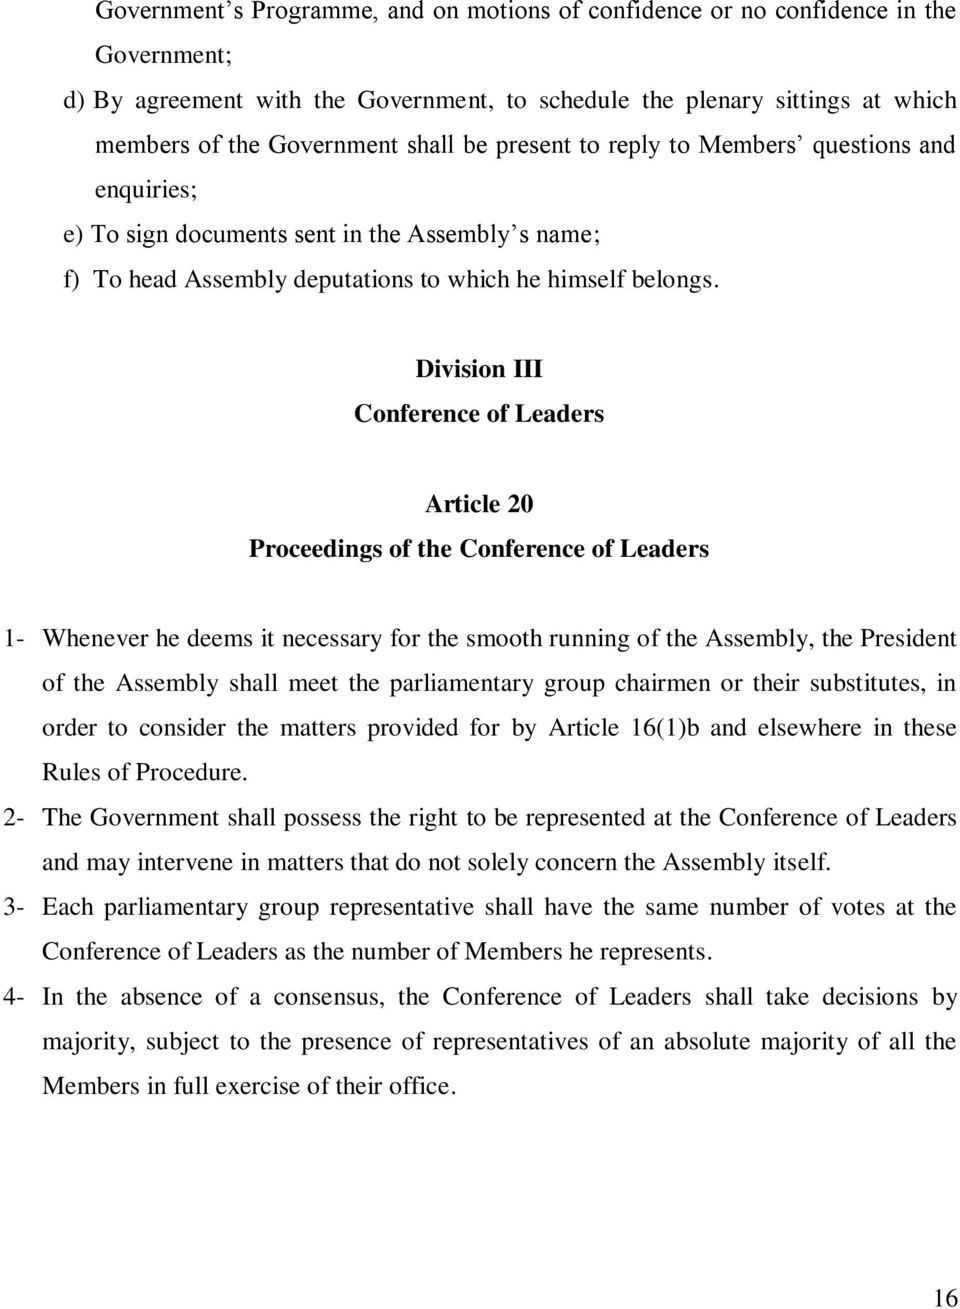 Division III Conference of Leaders Article 20 Proceedings of the Conference of Leaders 1- Whenever he deems it necessary for the smooth running of the Assembly, the President of the Assembly shall